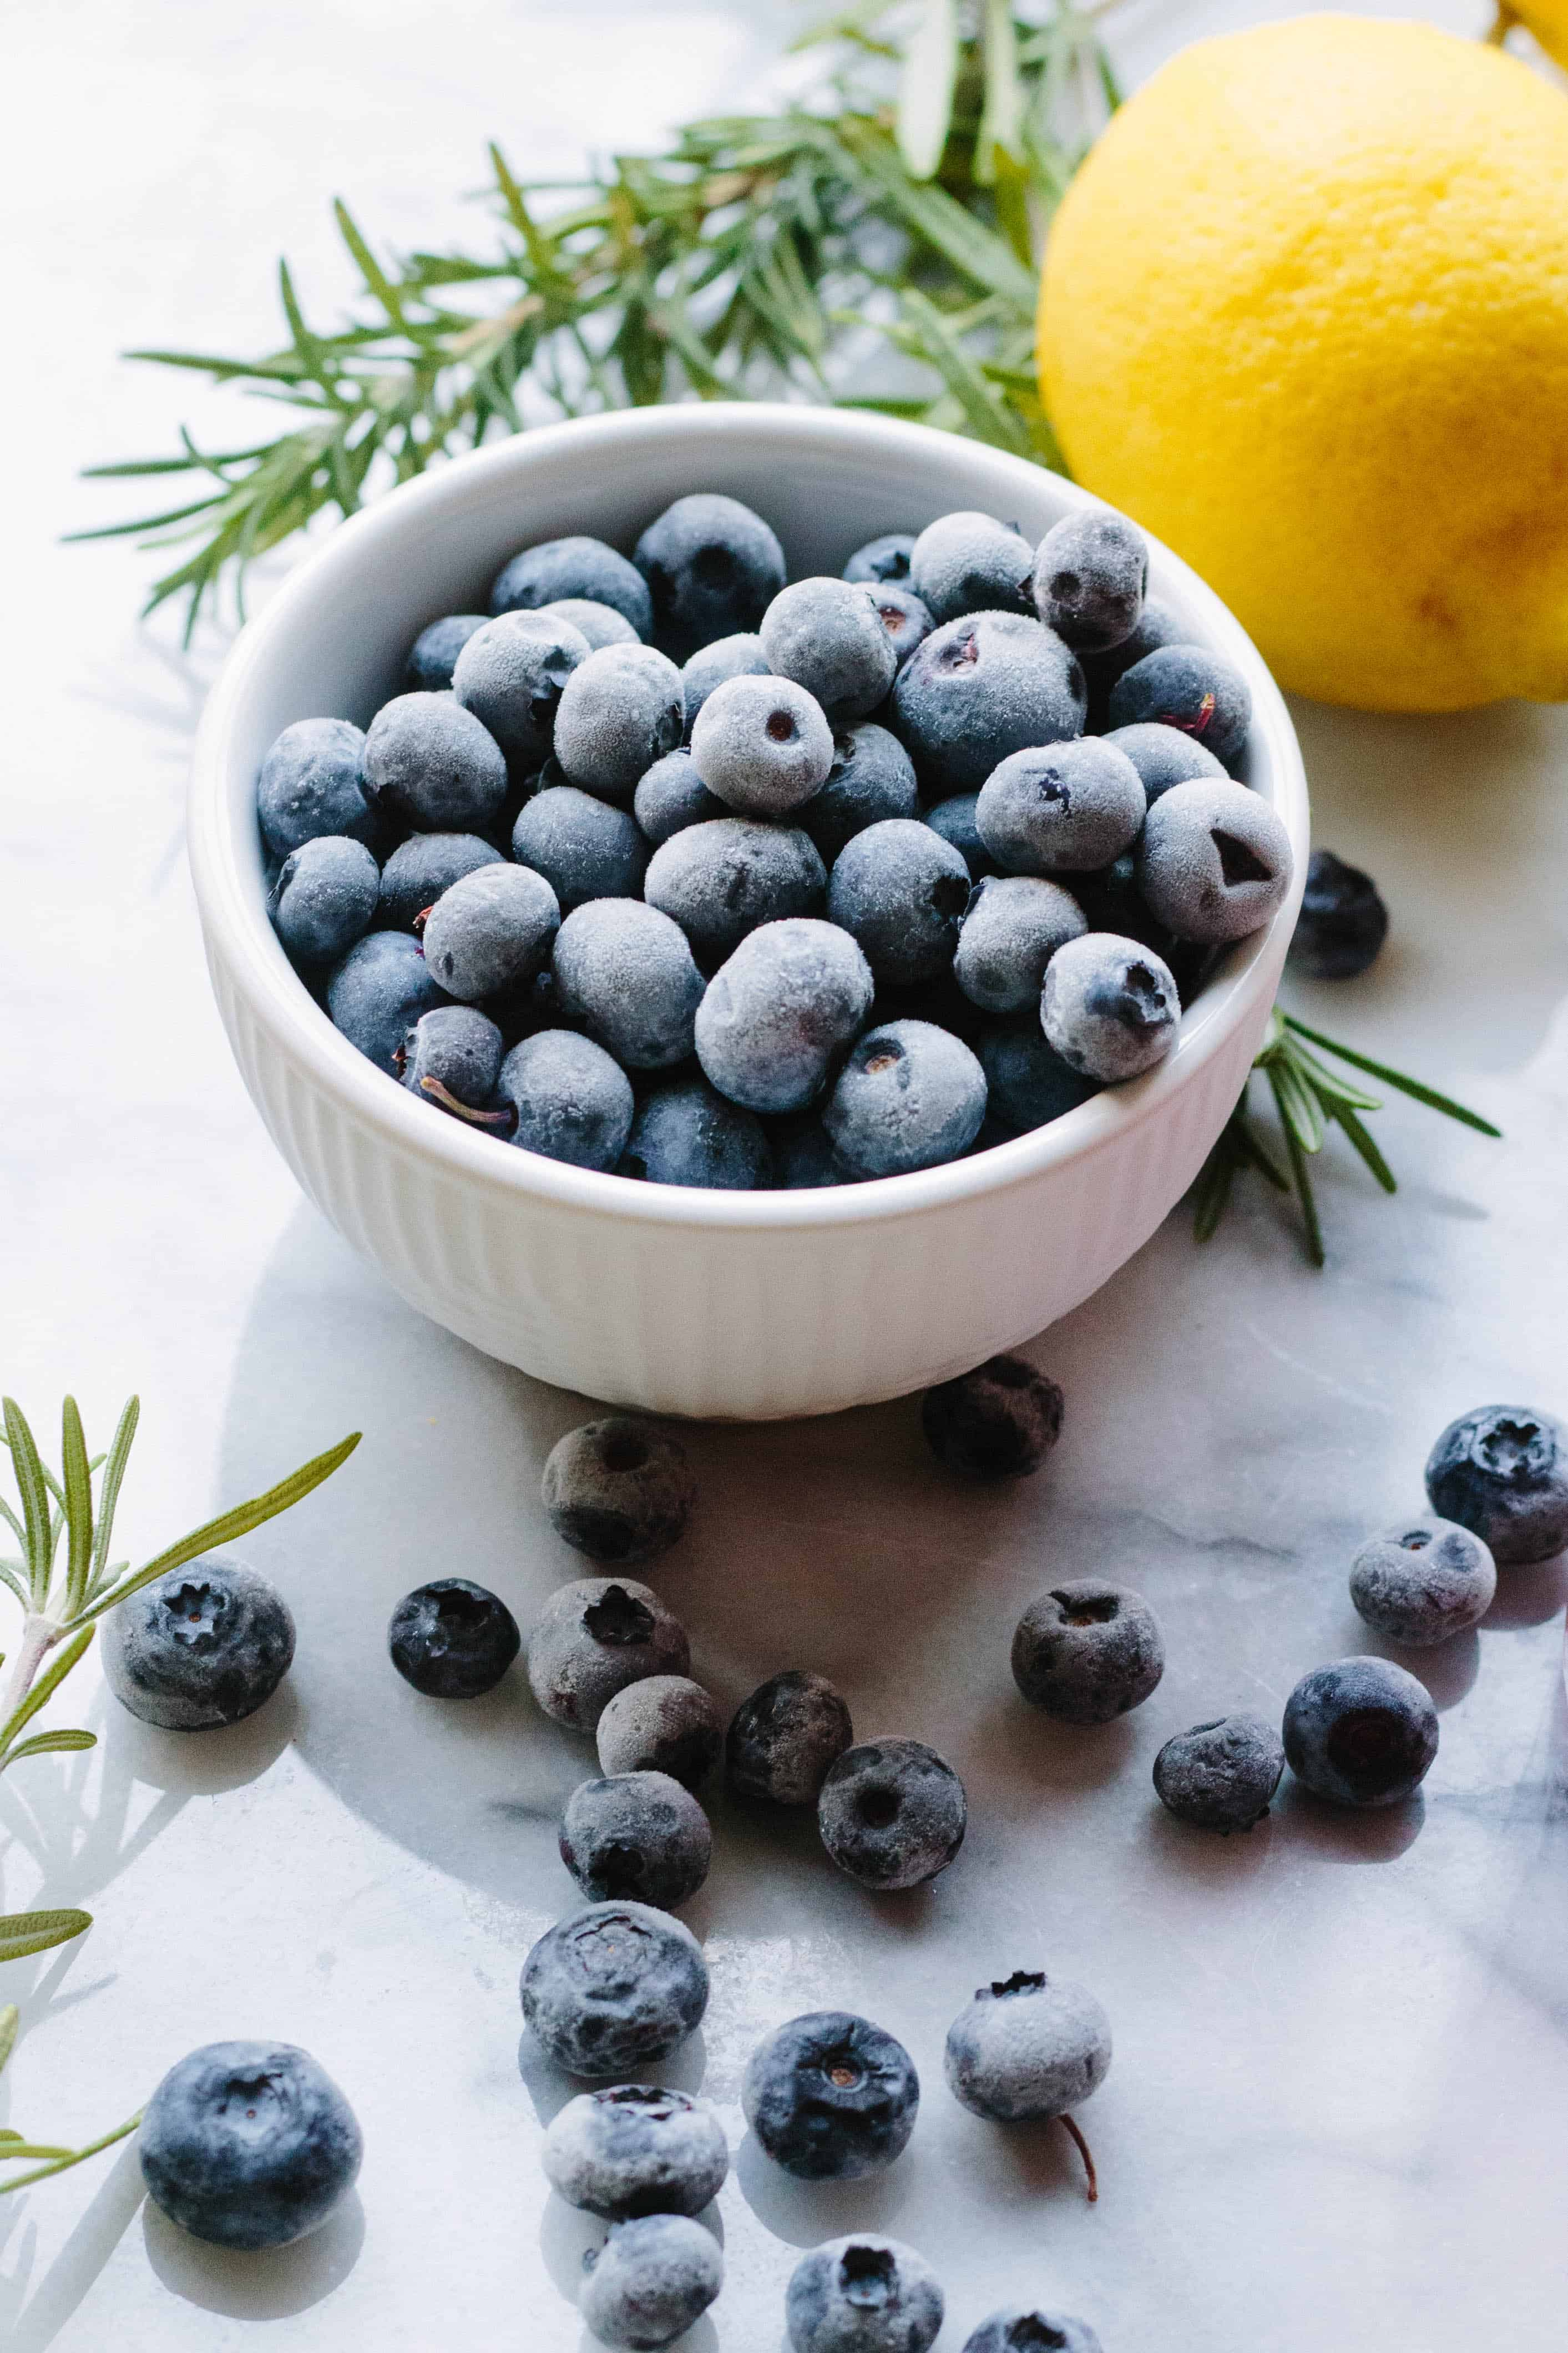 Small white bowl of fresh blueberries.